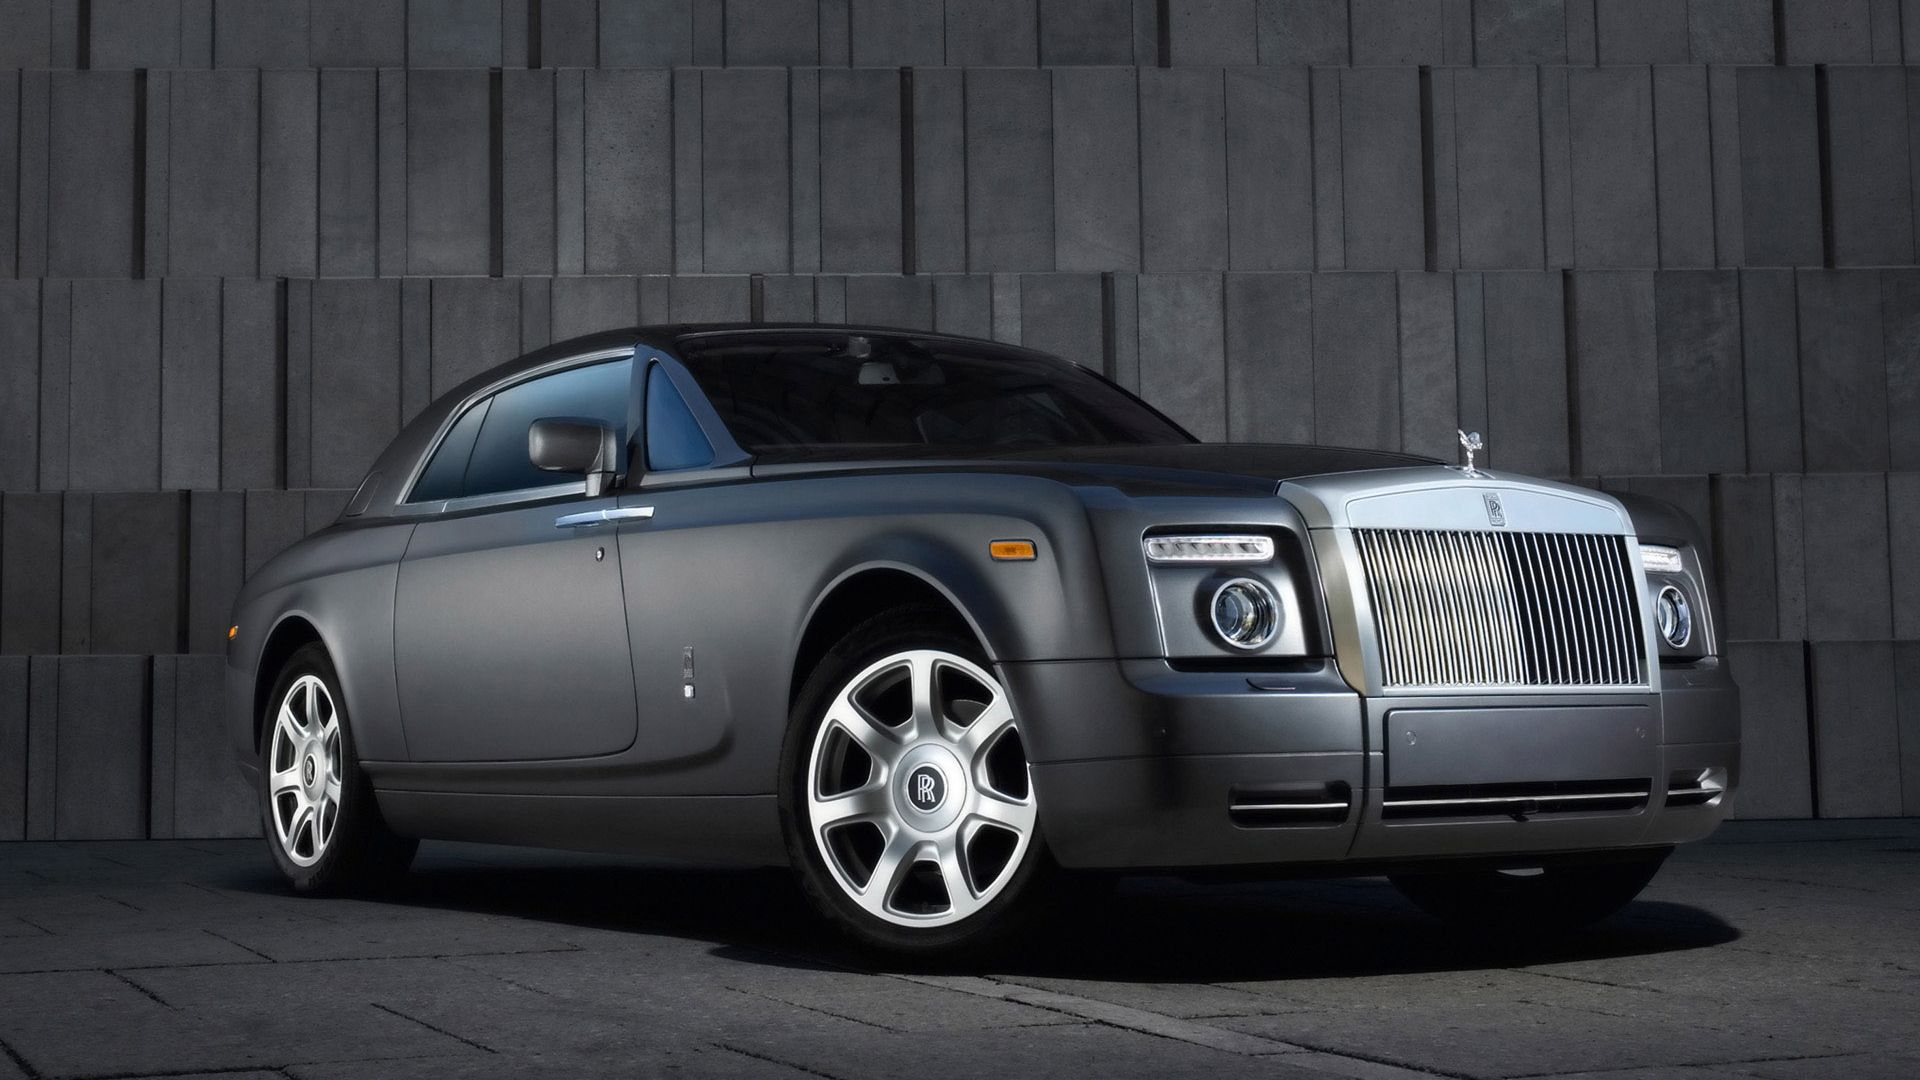 20 Hd Car Wallpapers 1080p Carwallpaperfx Com Rolls Royce Phantom Rolls Royce Phantom Coupe Rolls Royce